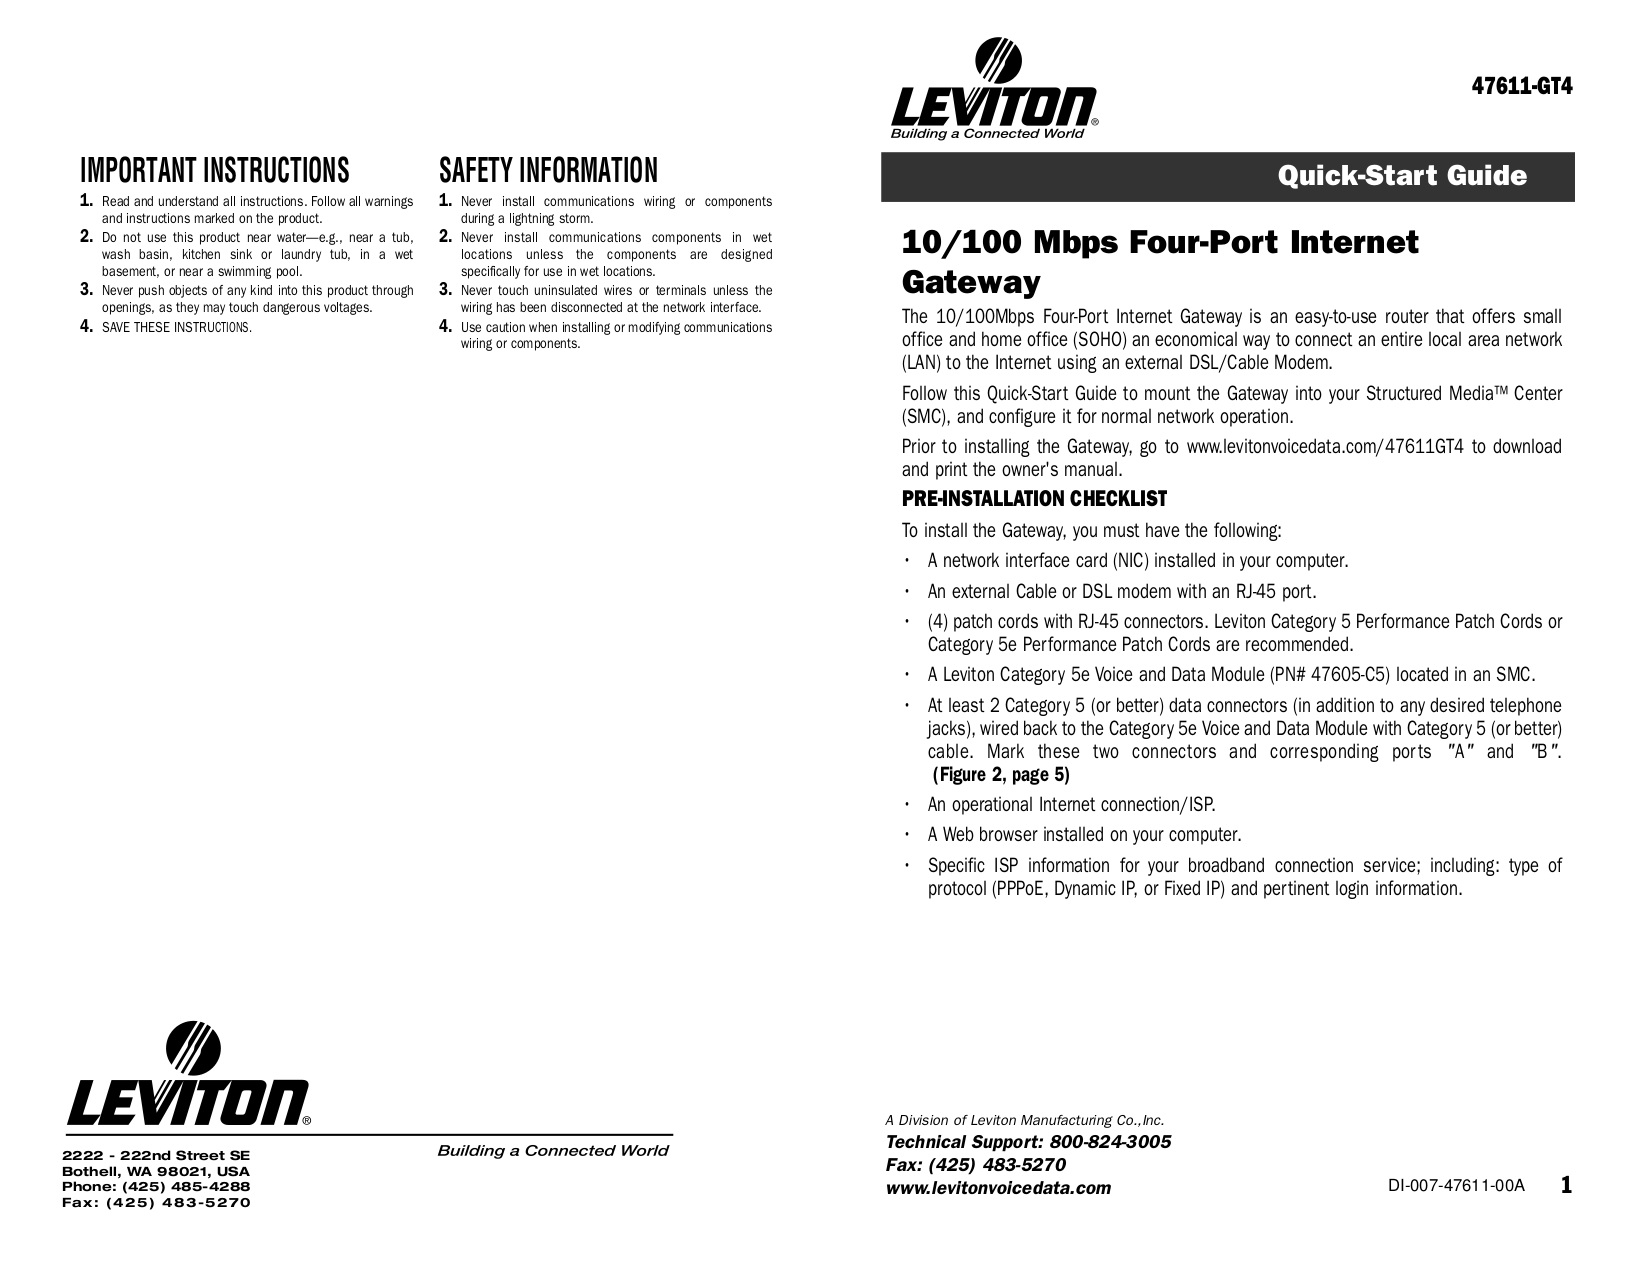 Download free pdf for Leviton 47605-C5B Data Module Other manual